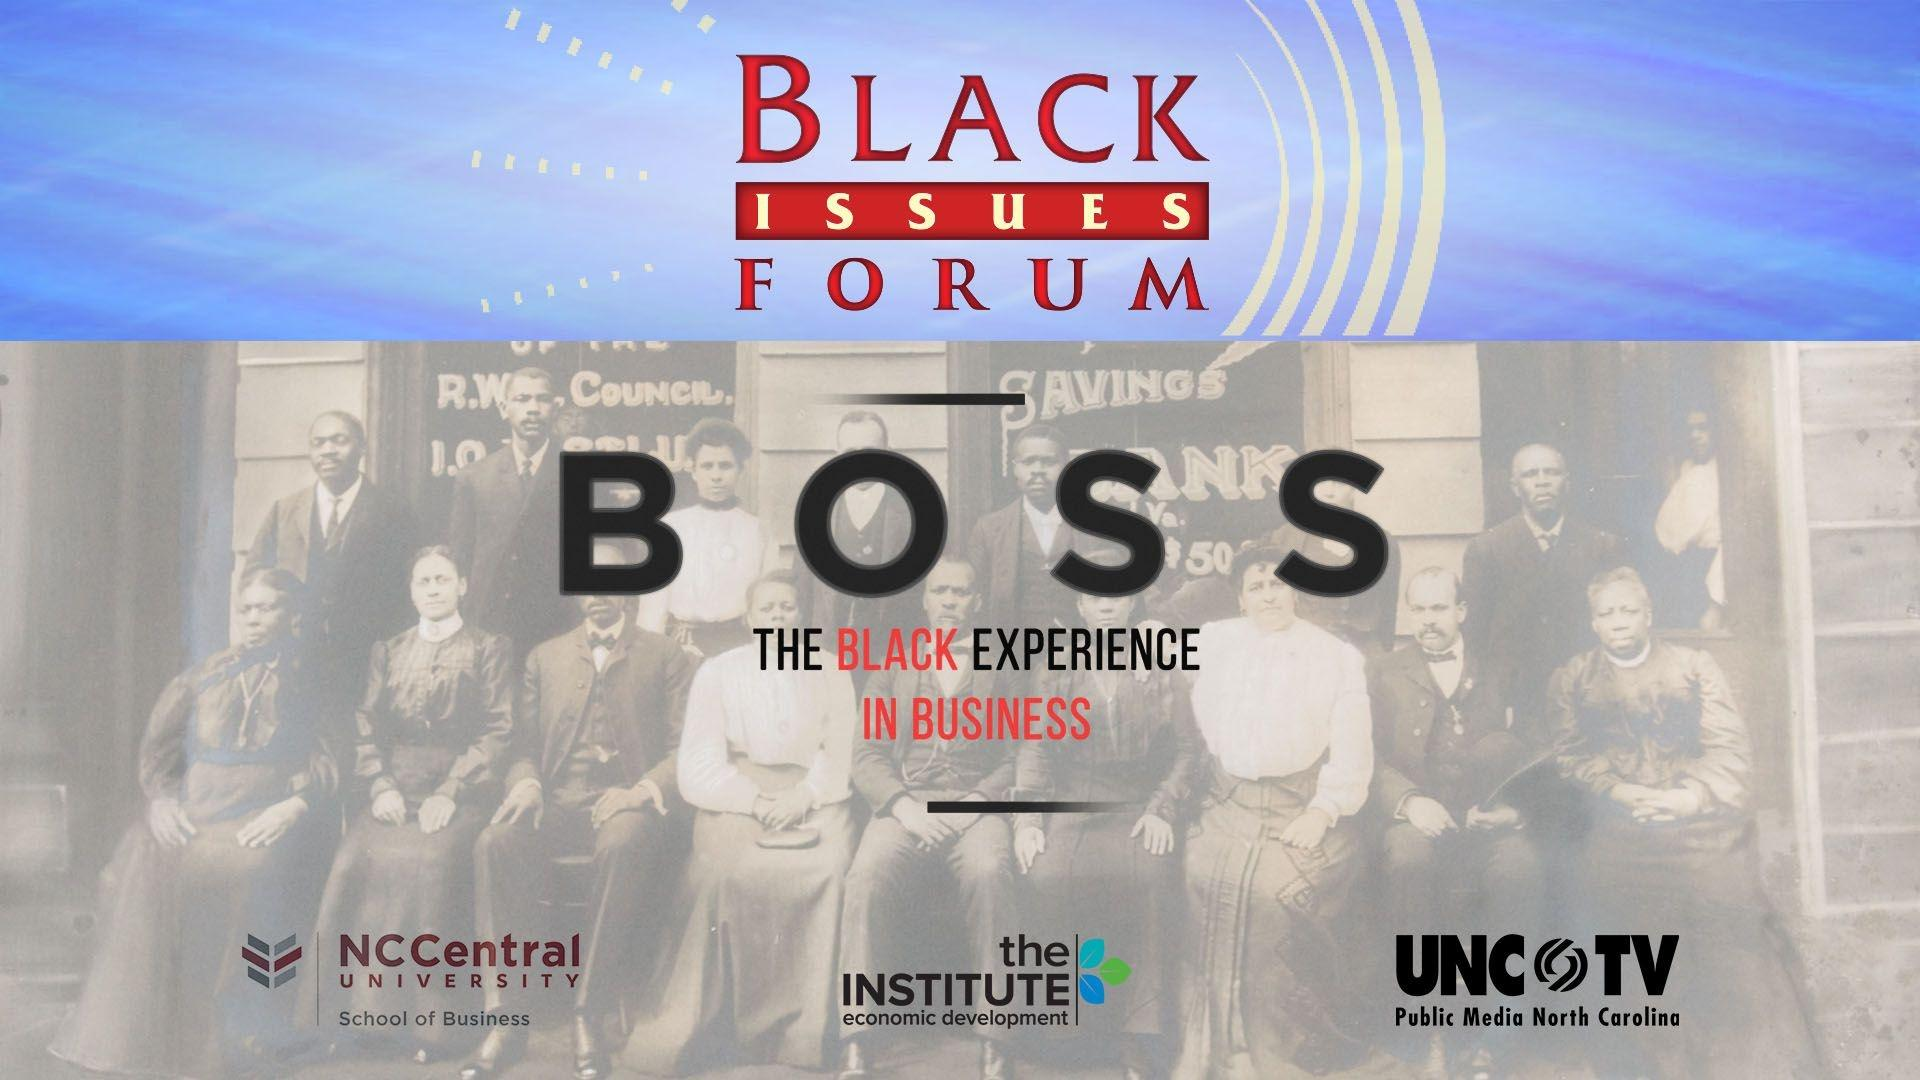 black issues forum boss special logo